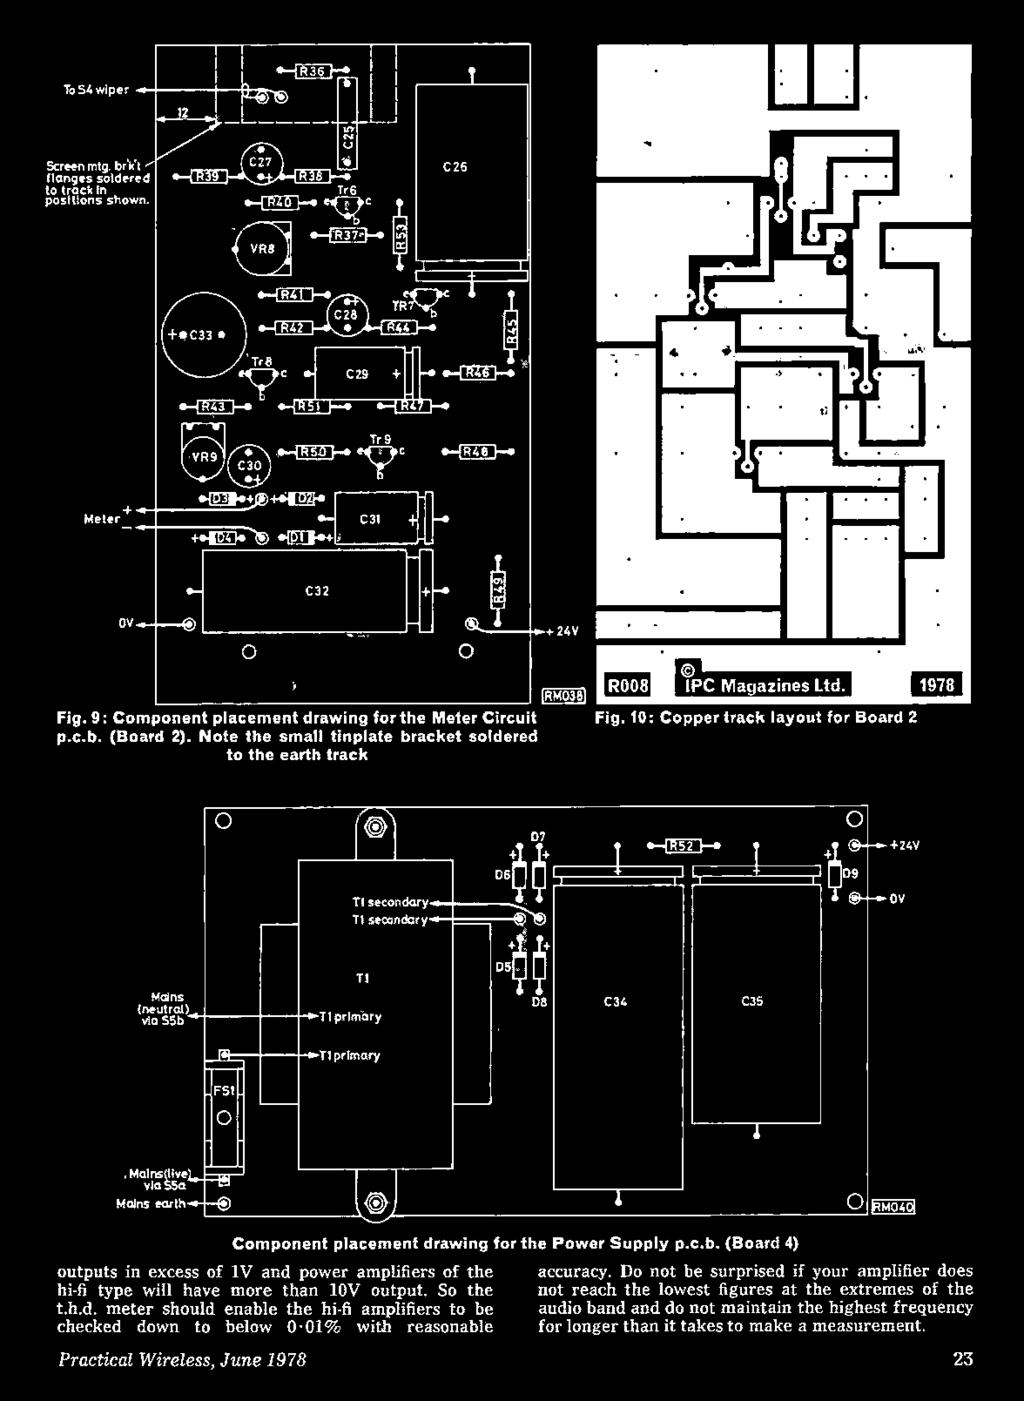 Australia New Zealand South Africa Malaysia Also Simple Darkroom Circuit Diagram Schematic Likewise Toy Organ 555 Timer 1 Mmhh C31 Illj Cl2